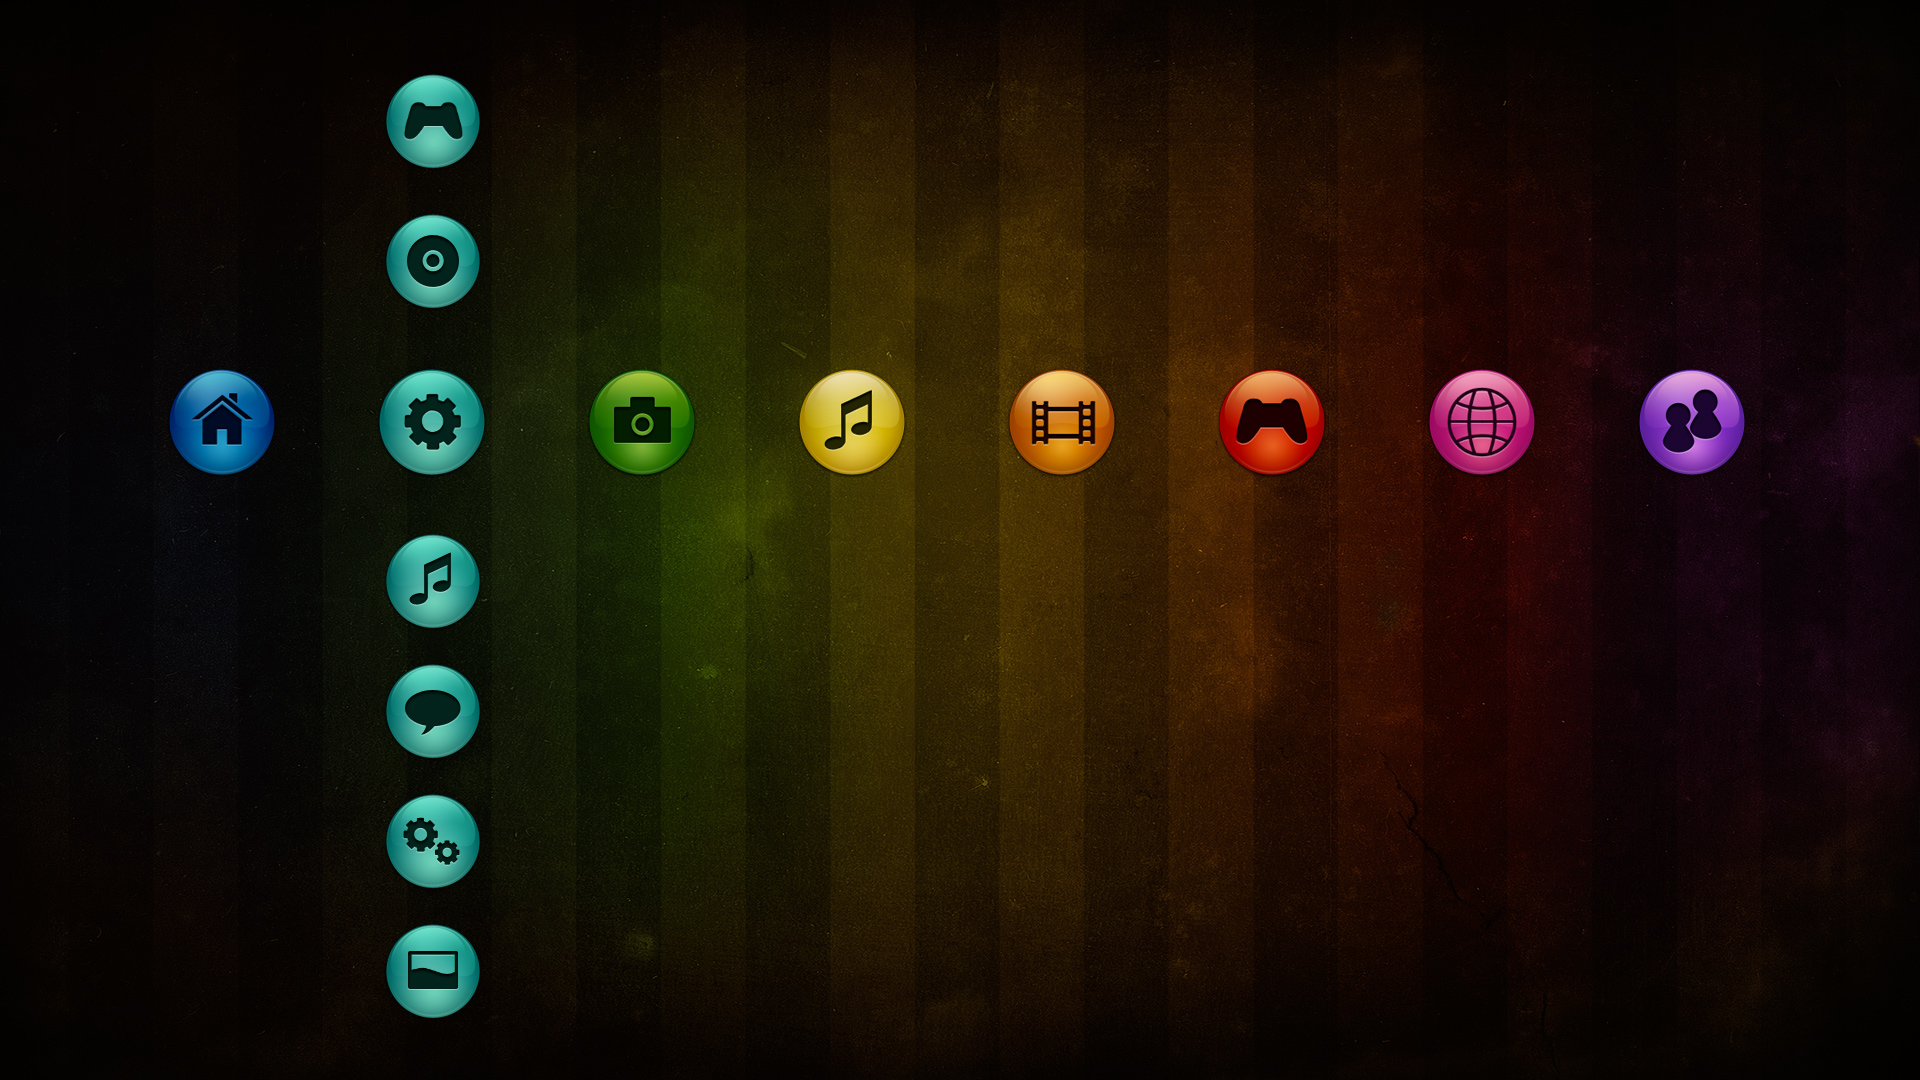 Sfere Colors 3 - PS3 Theme by javierocasio on DeviantArt